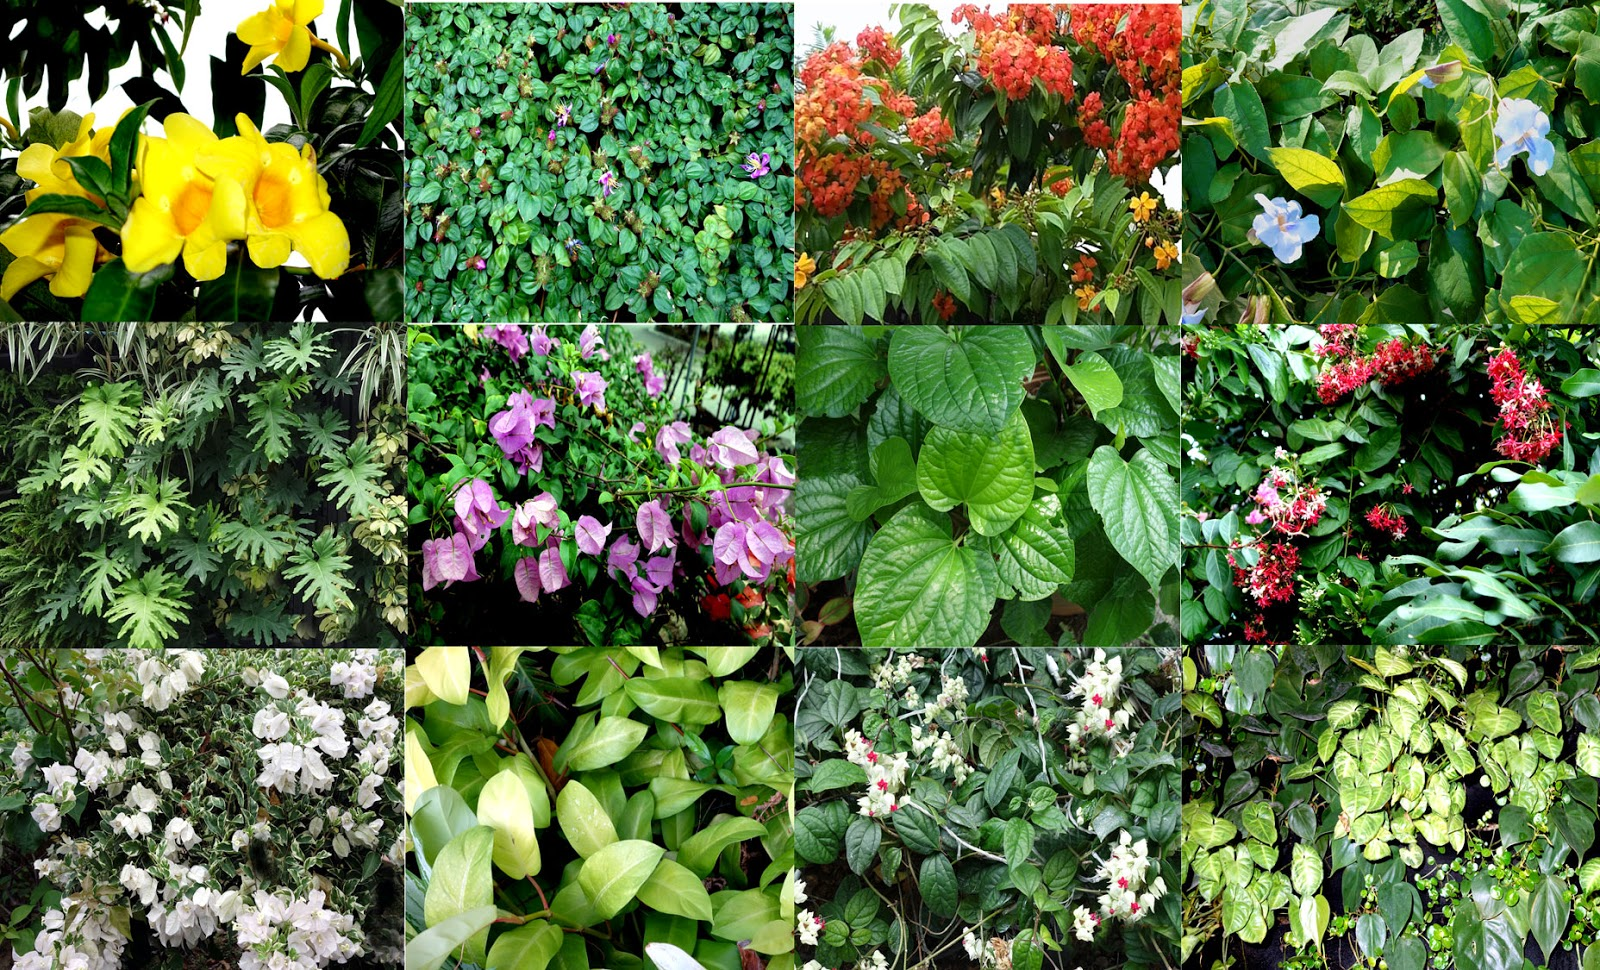 Garden climbers and creepers in malaysia and singapore climbers climbers and creepers scientific names scientific names of garden plants sciox Images